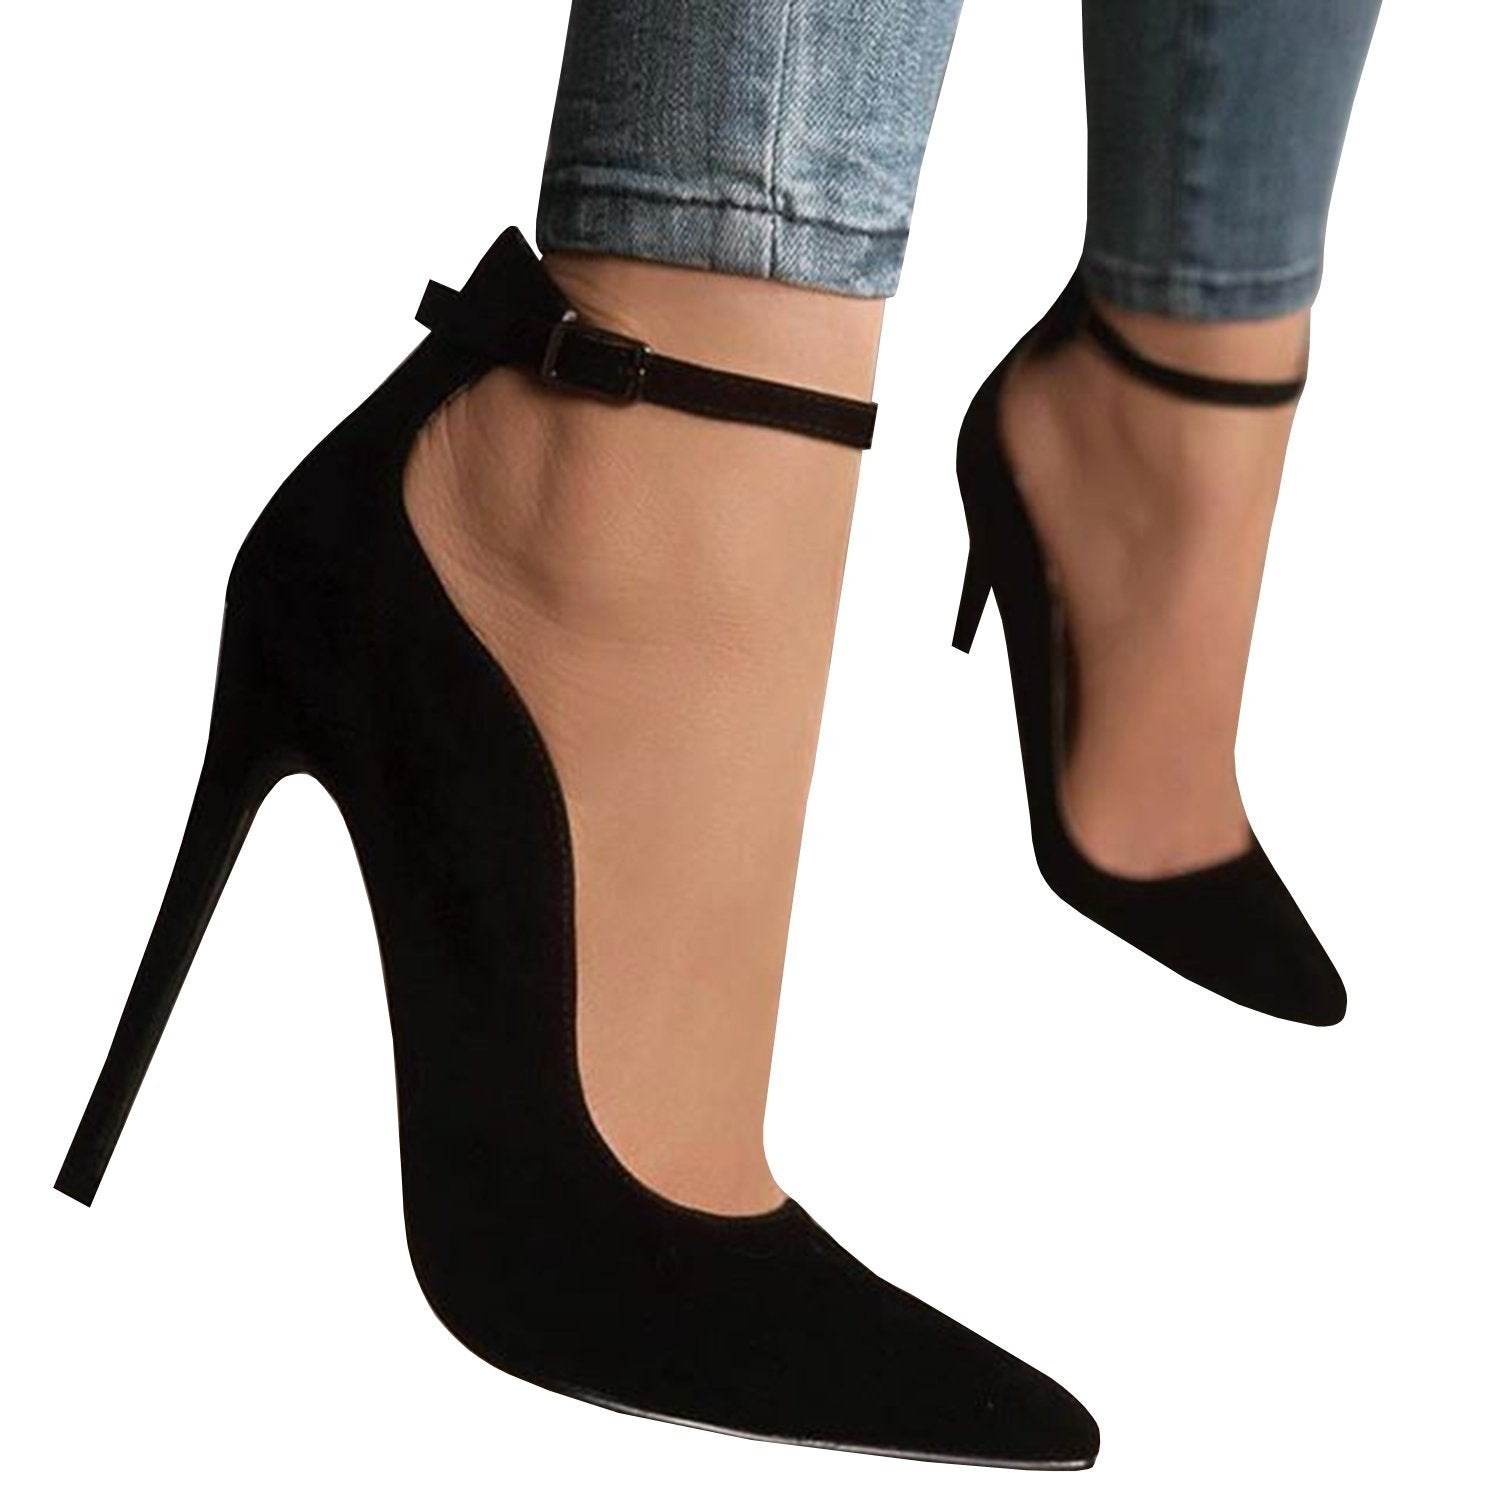 Ferbia Sandals For Women Casual Black Cusp Toe High Heeled Pumps Ankle Strap Shoes